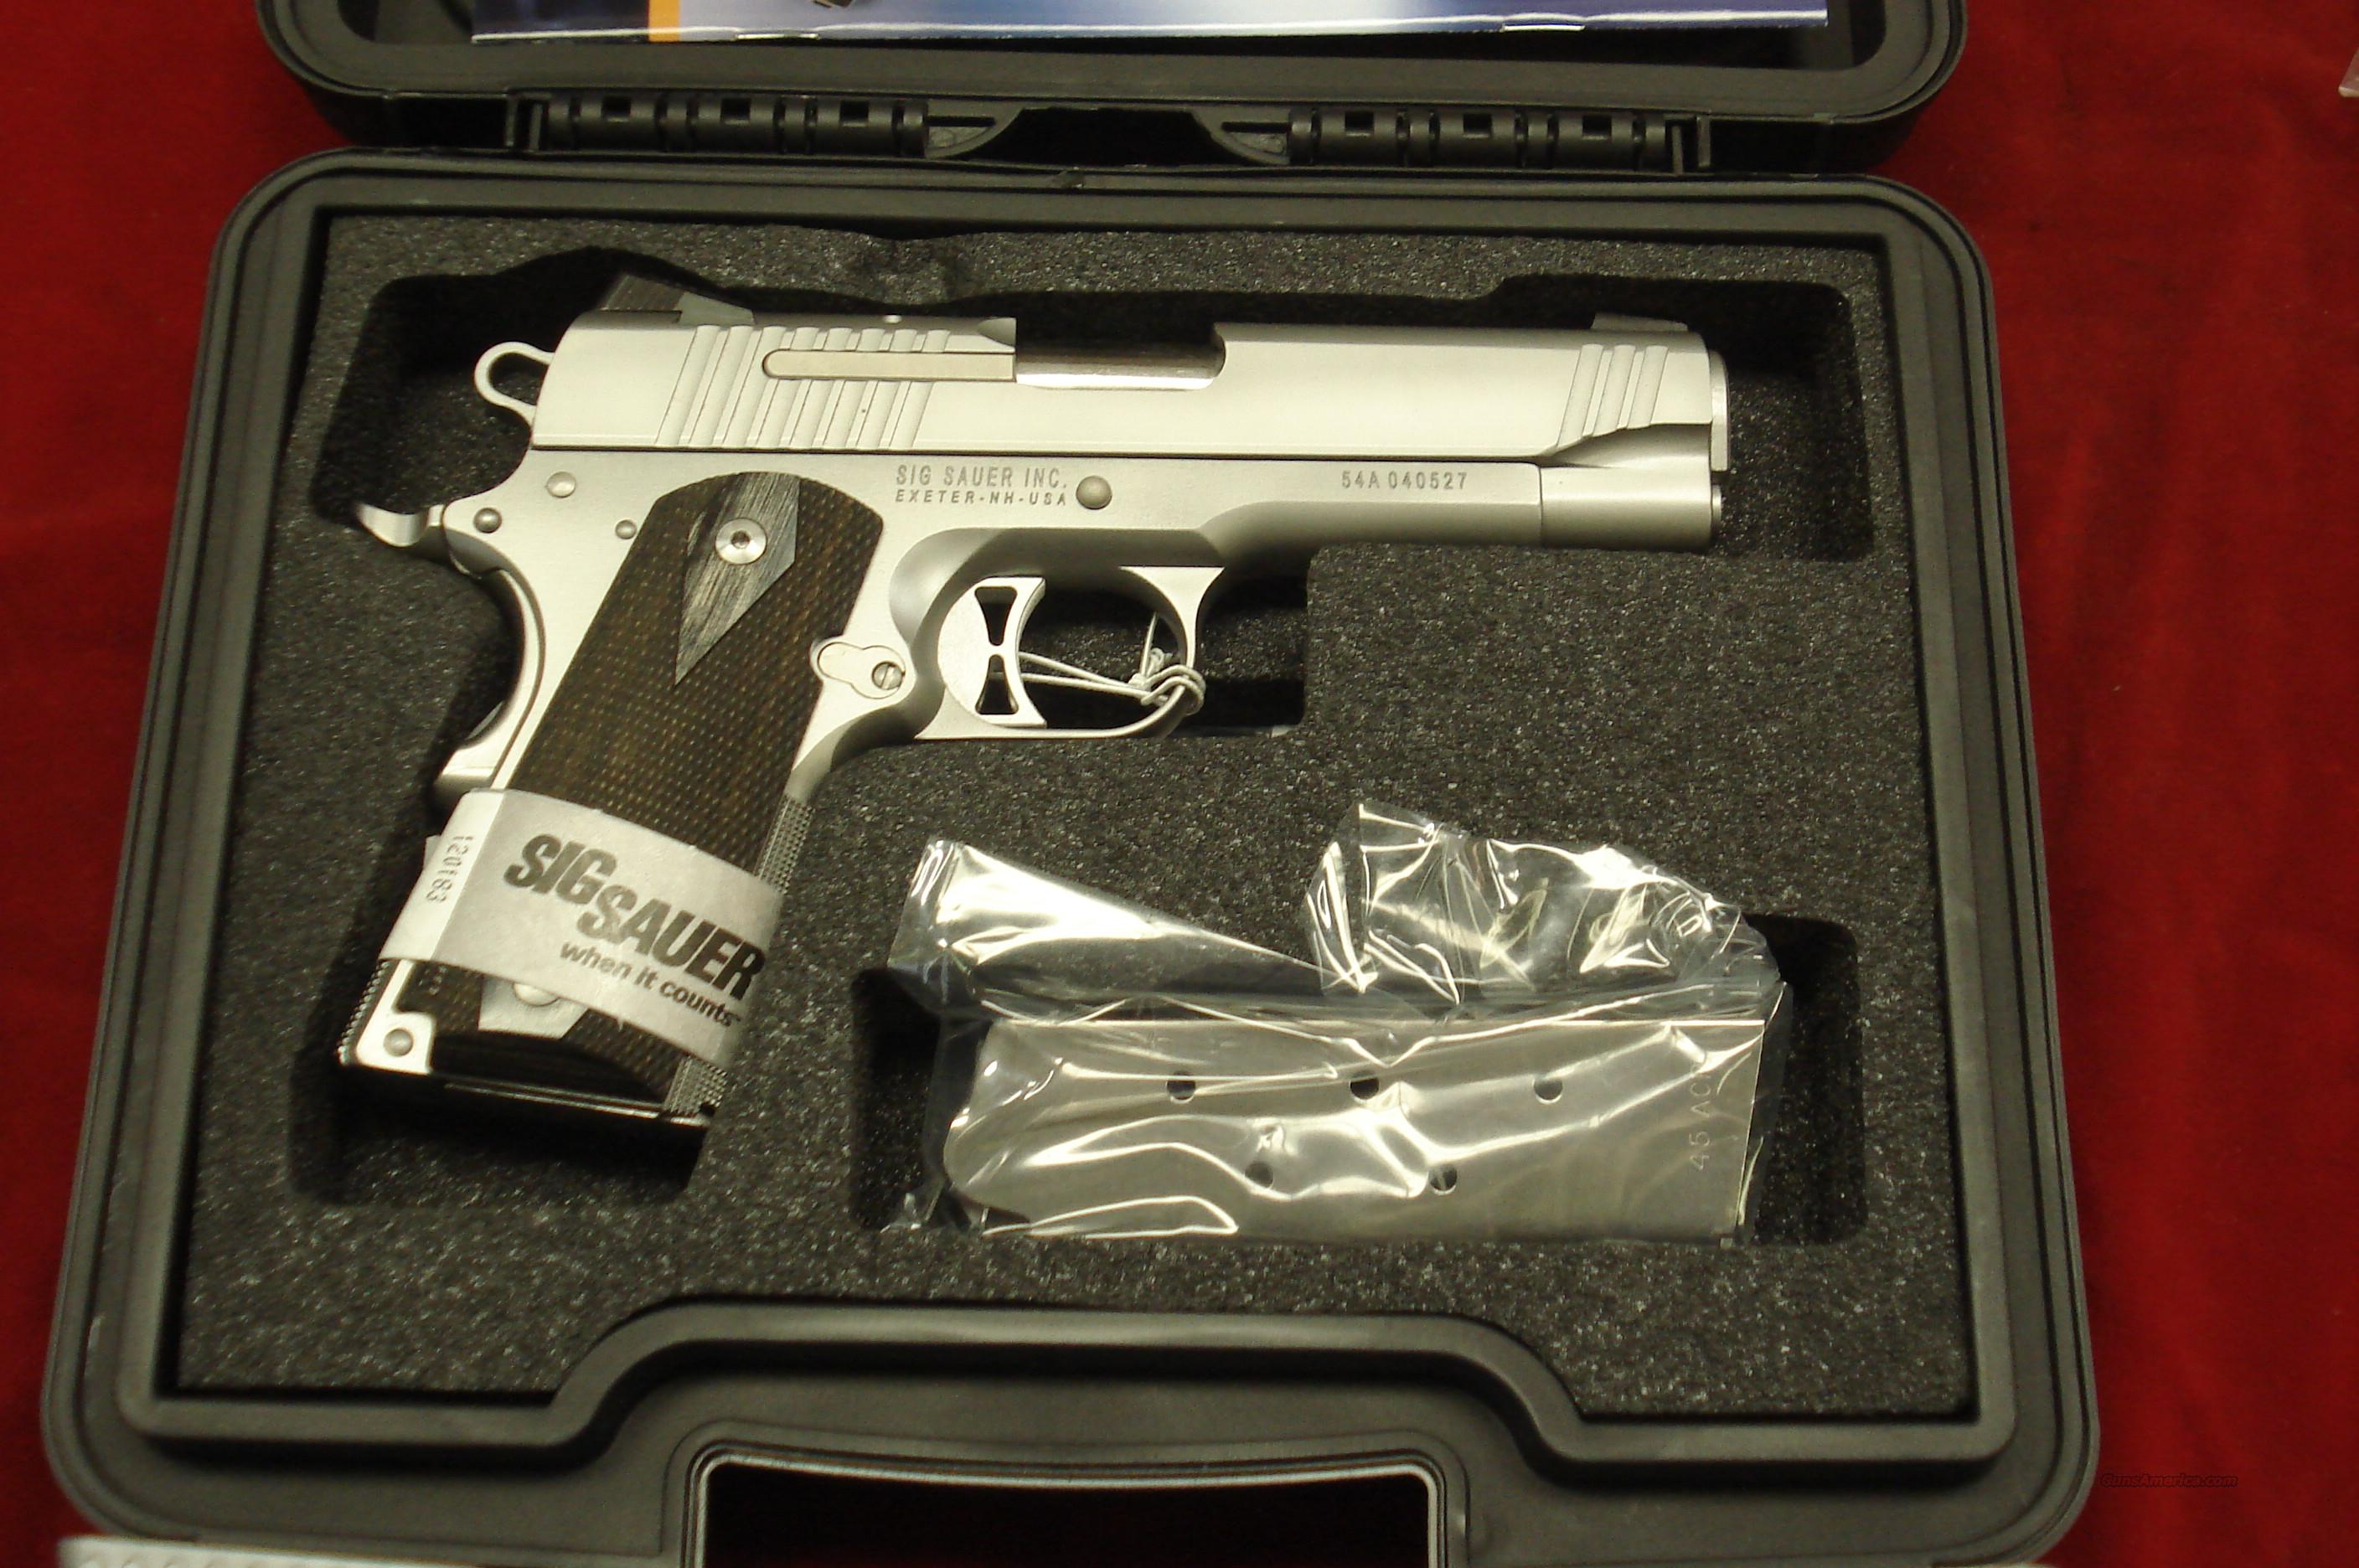 SIG SAUER 1911 COMPACT STAINLESS 45CAL. WITH NIGHT SIGHTS NEW  Guns > Pistols > Sig - Sauer/Sigarms Pistols > 1911